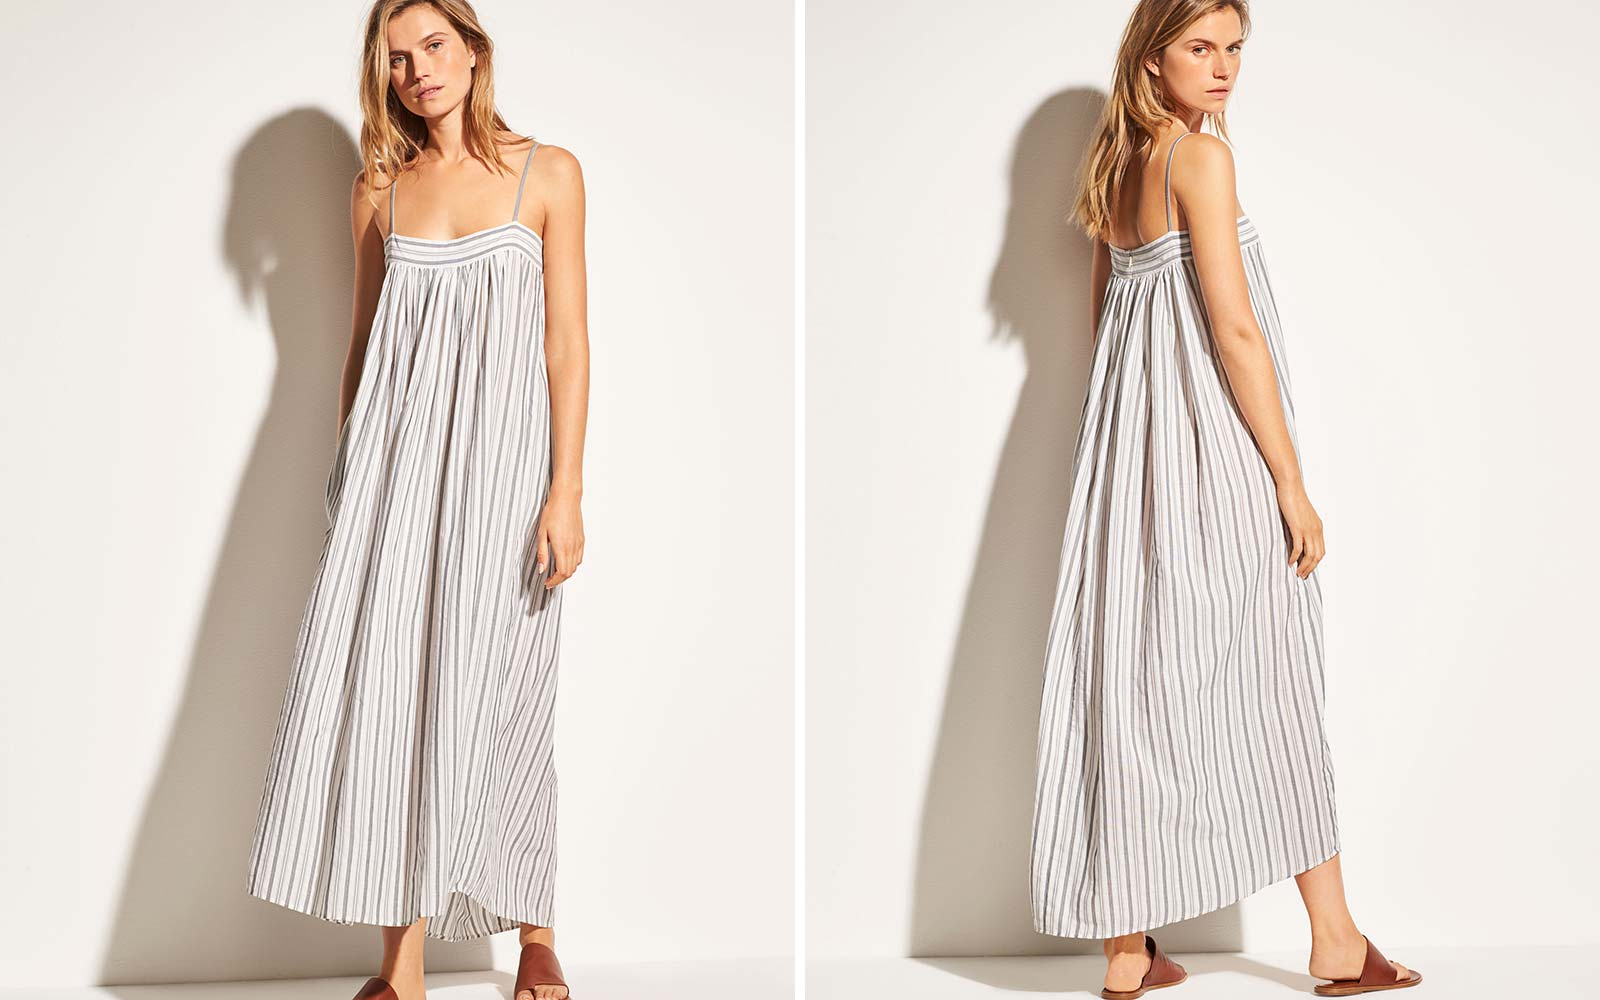 Vince Beach Capsule Collection Fashion Stripe Dress